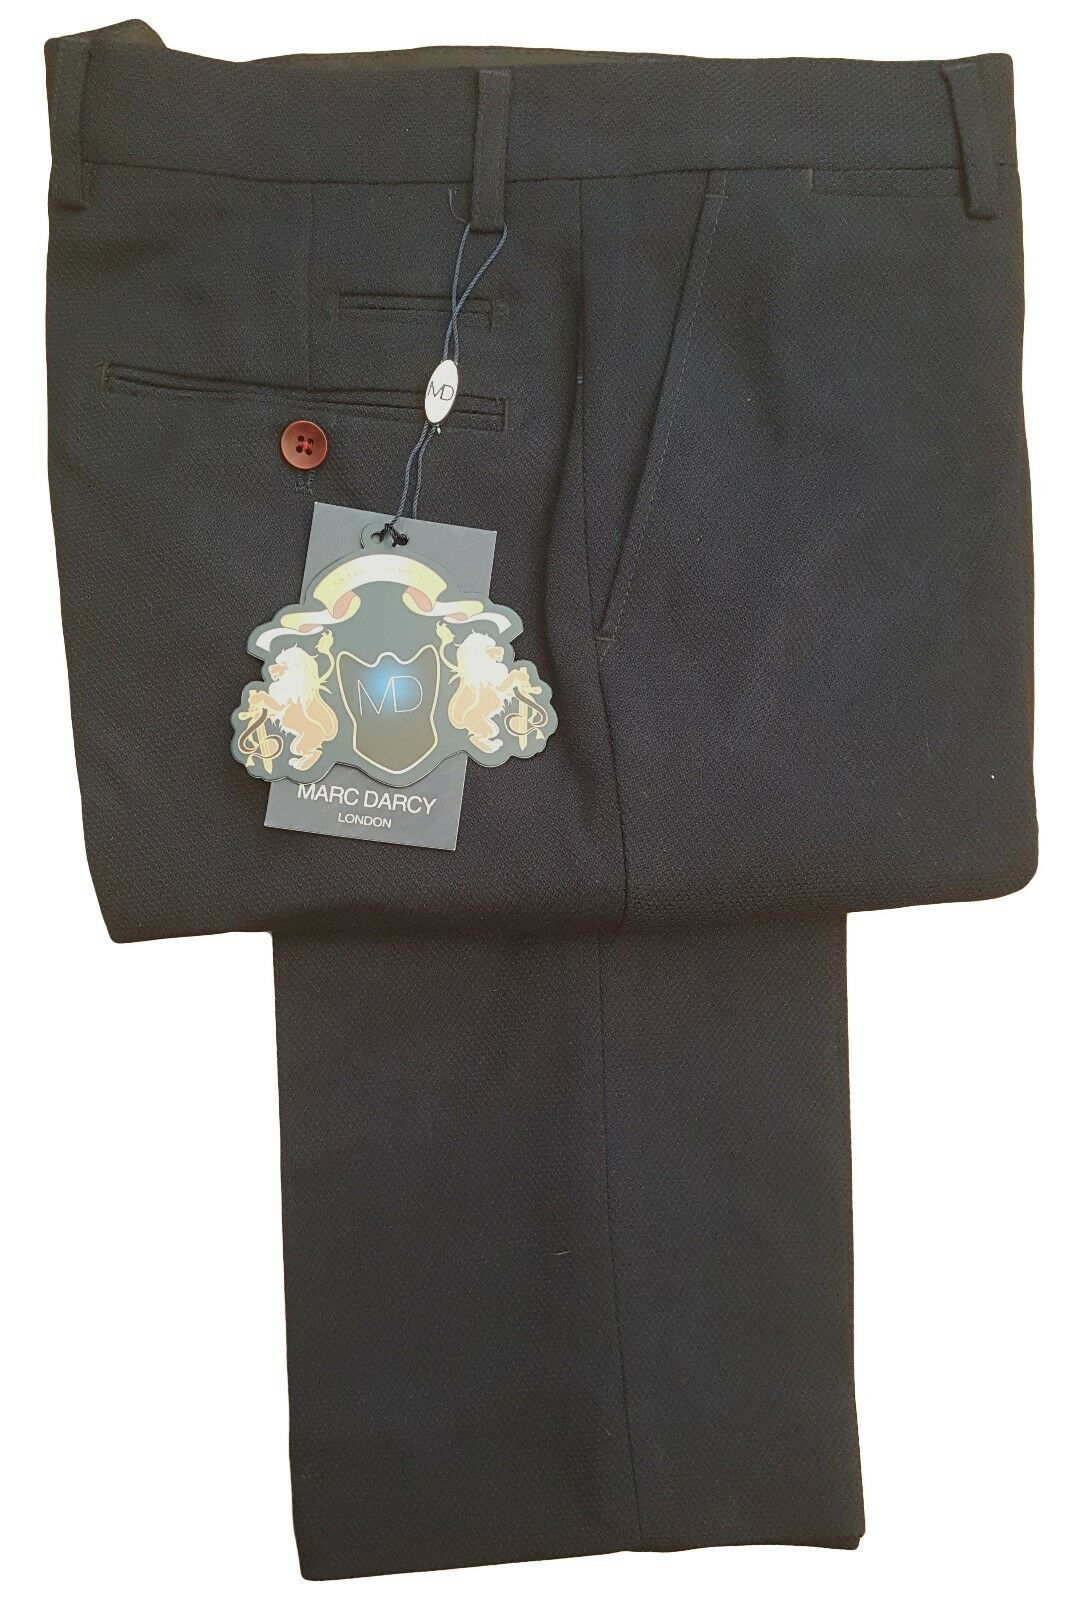 MENS MARC DARCY FORMAL SMART DRESSY TROUSER STYLE JD4 - NAVY blueE